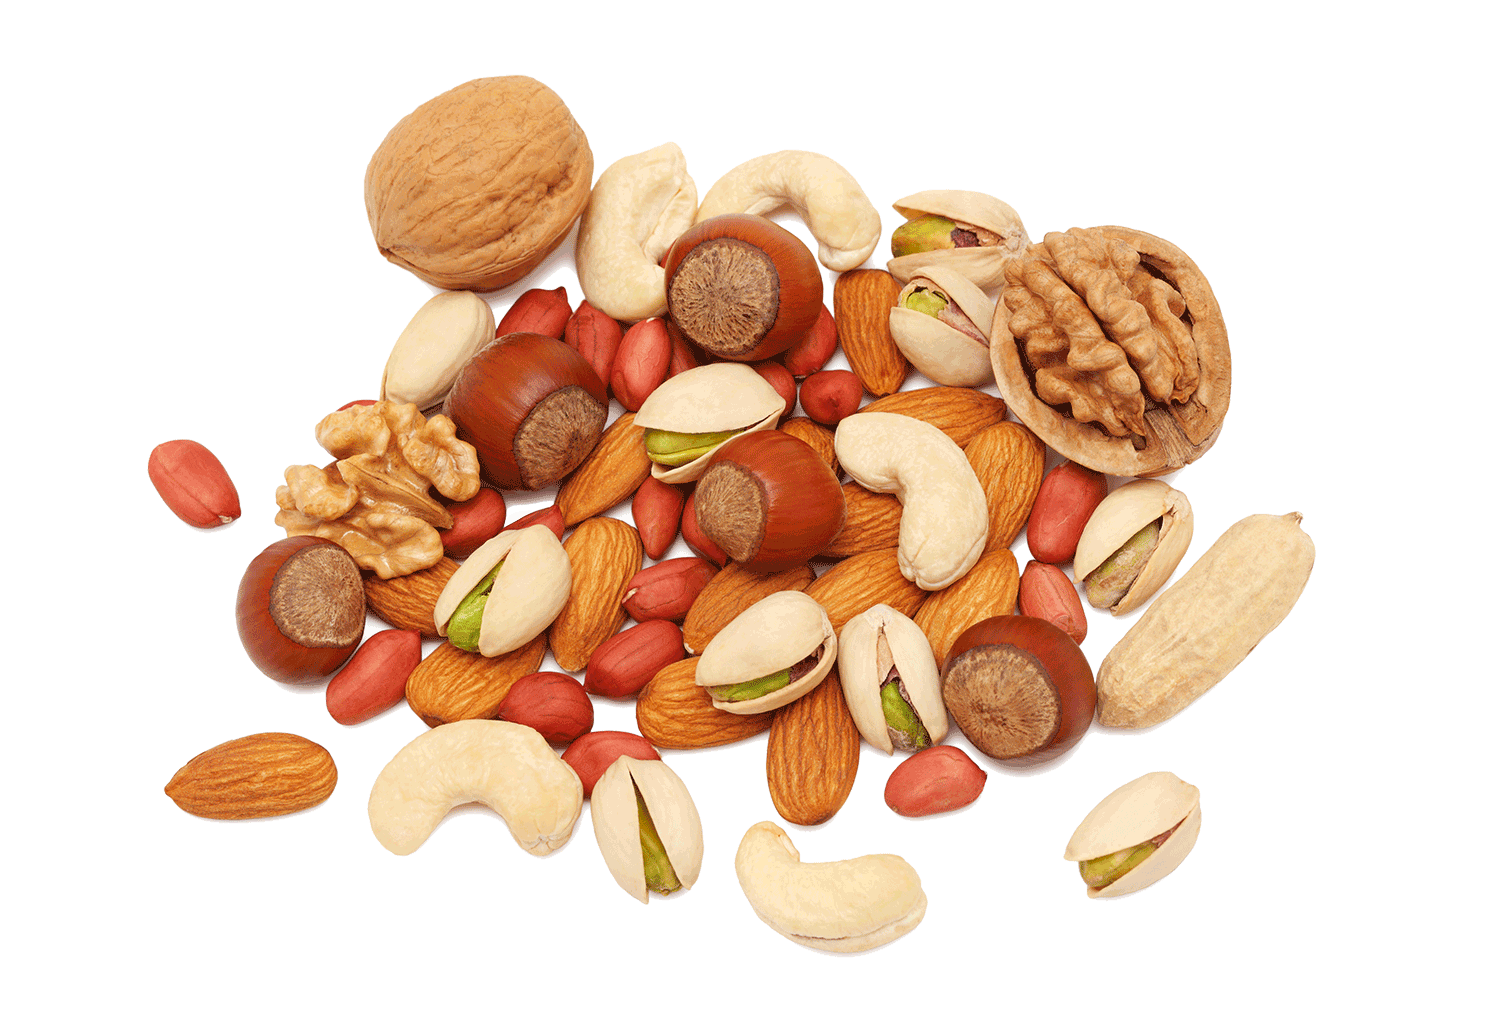 Clipart food nuts. About us roynuts making